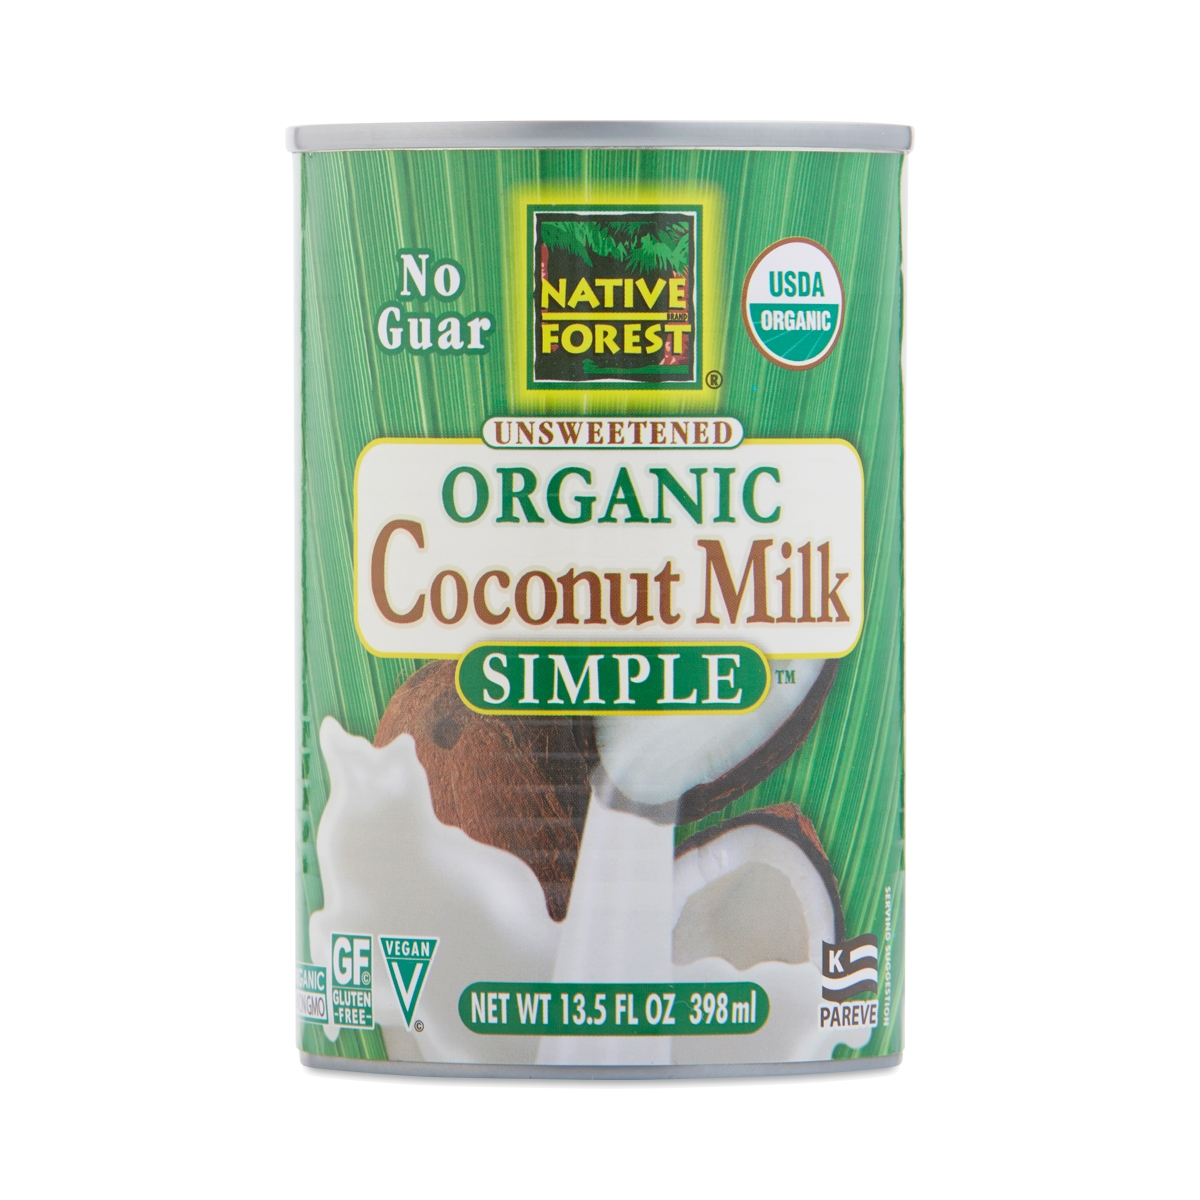 Native Forest Organic Simple Coconut Milk 13.5 oz can